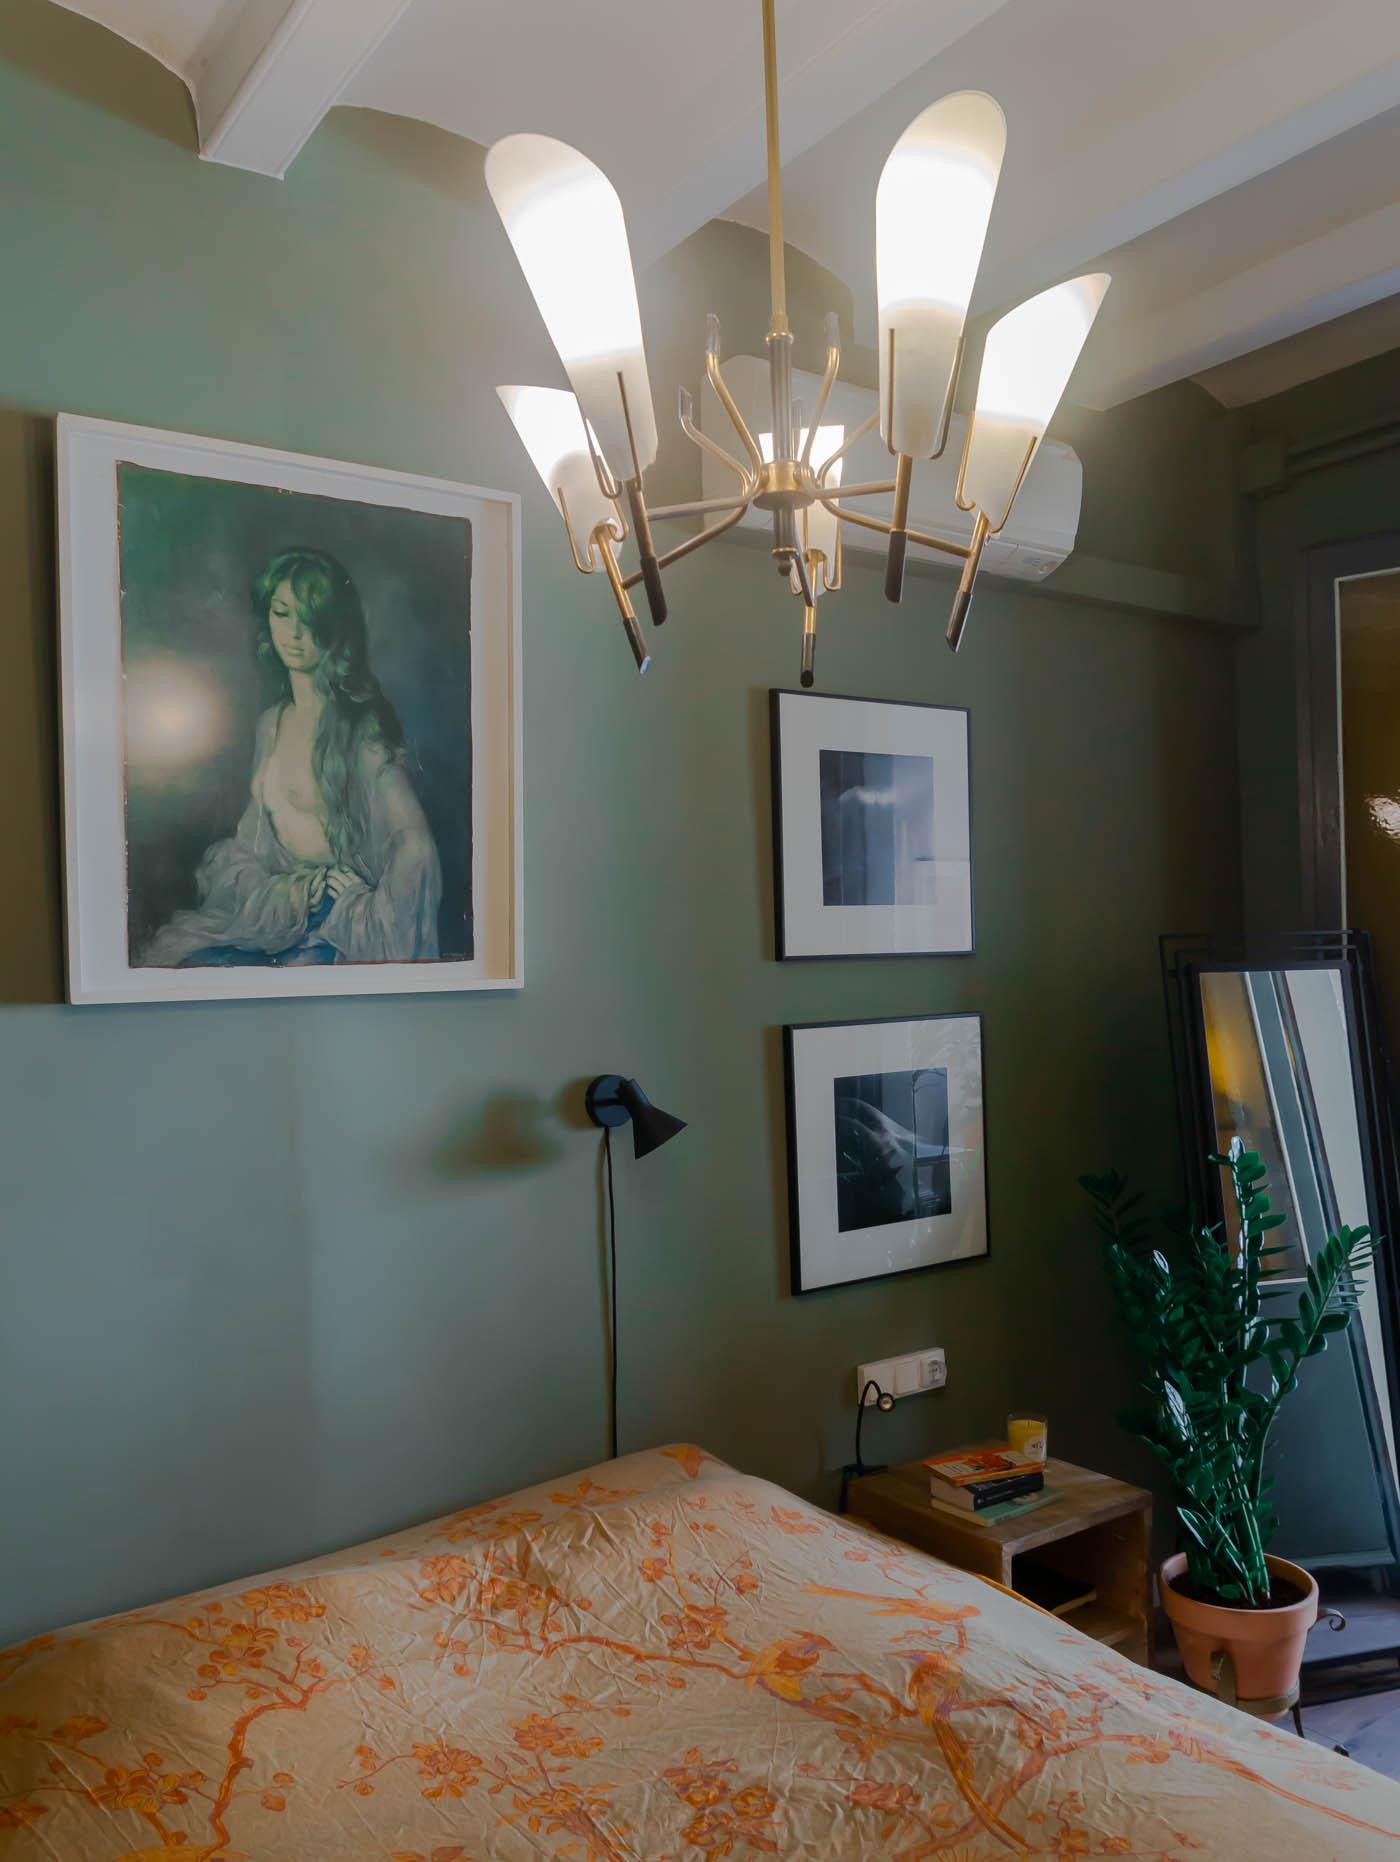 Barcelona home tour: sage green master bedroom with Hermes throw and vintage chandelier